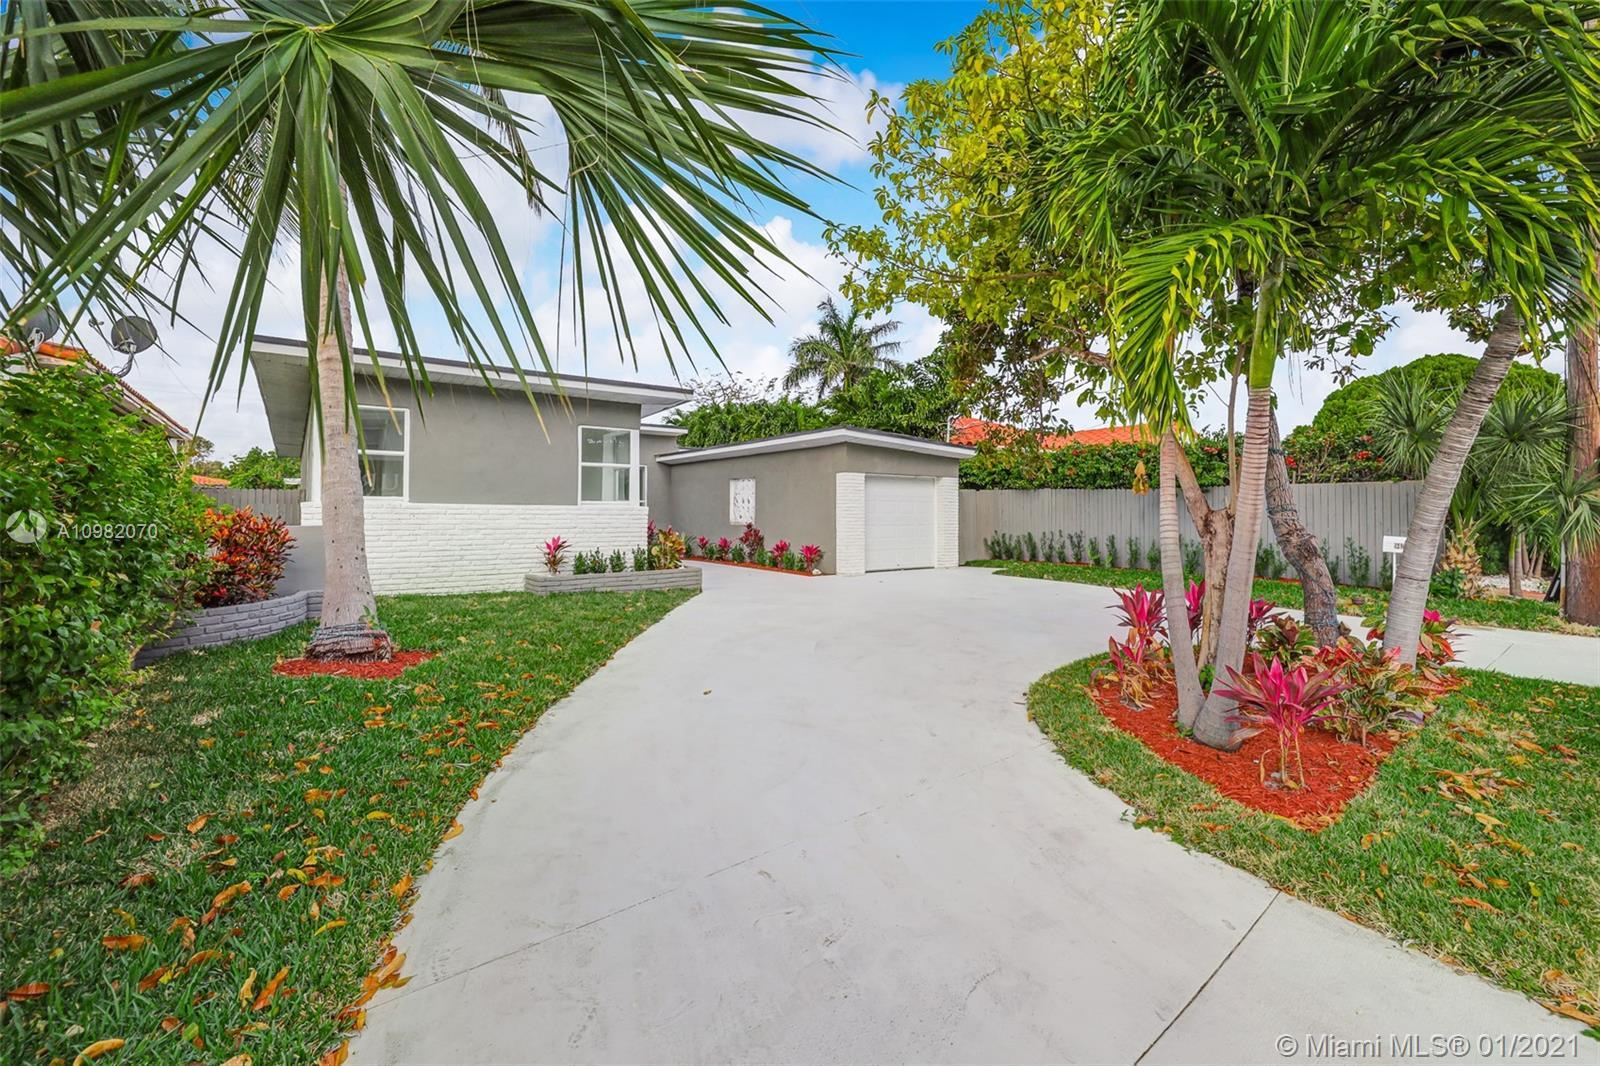 Totally renovated 2BR/2BA + Large Den home only 2 blocks away from Surfside Beach! Brand new modern